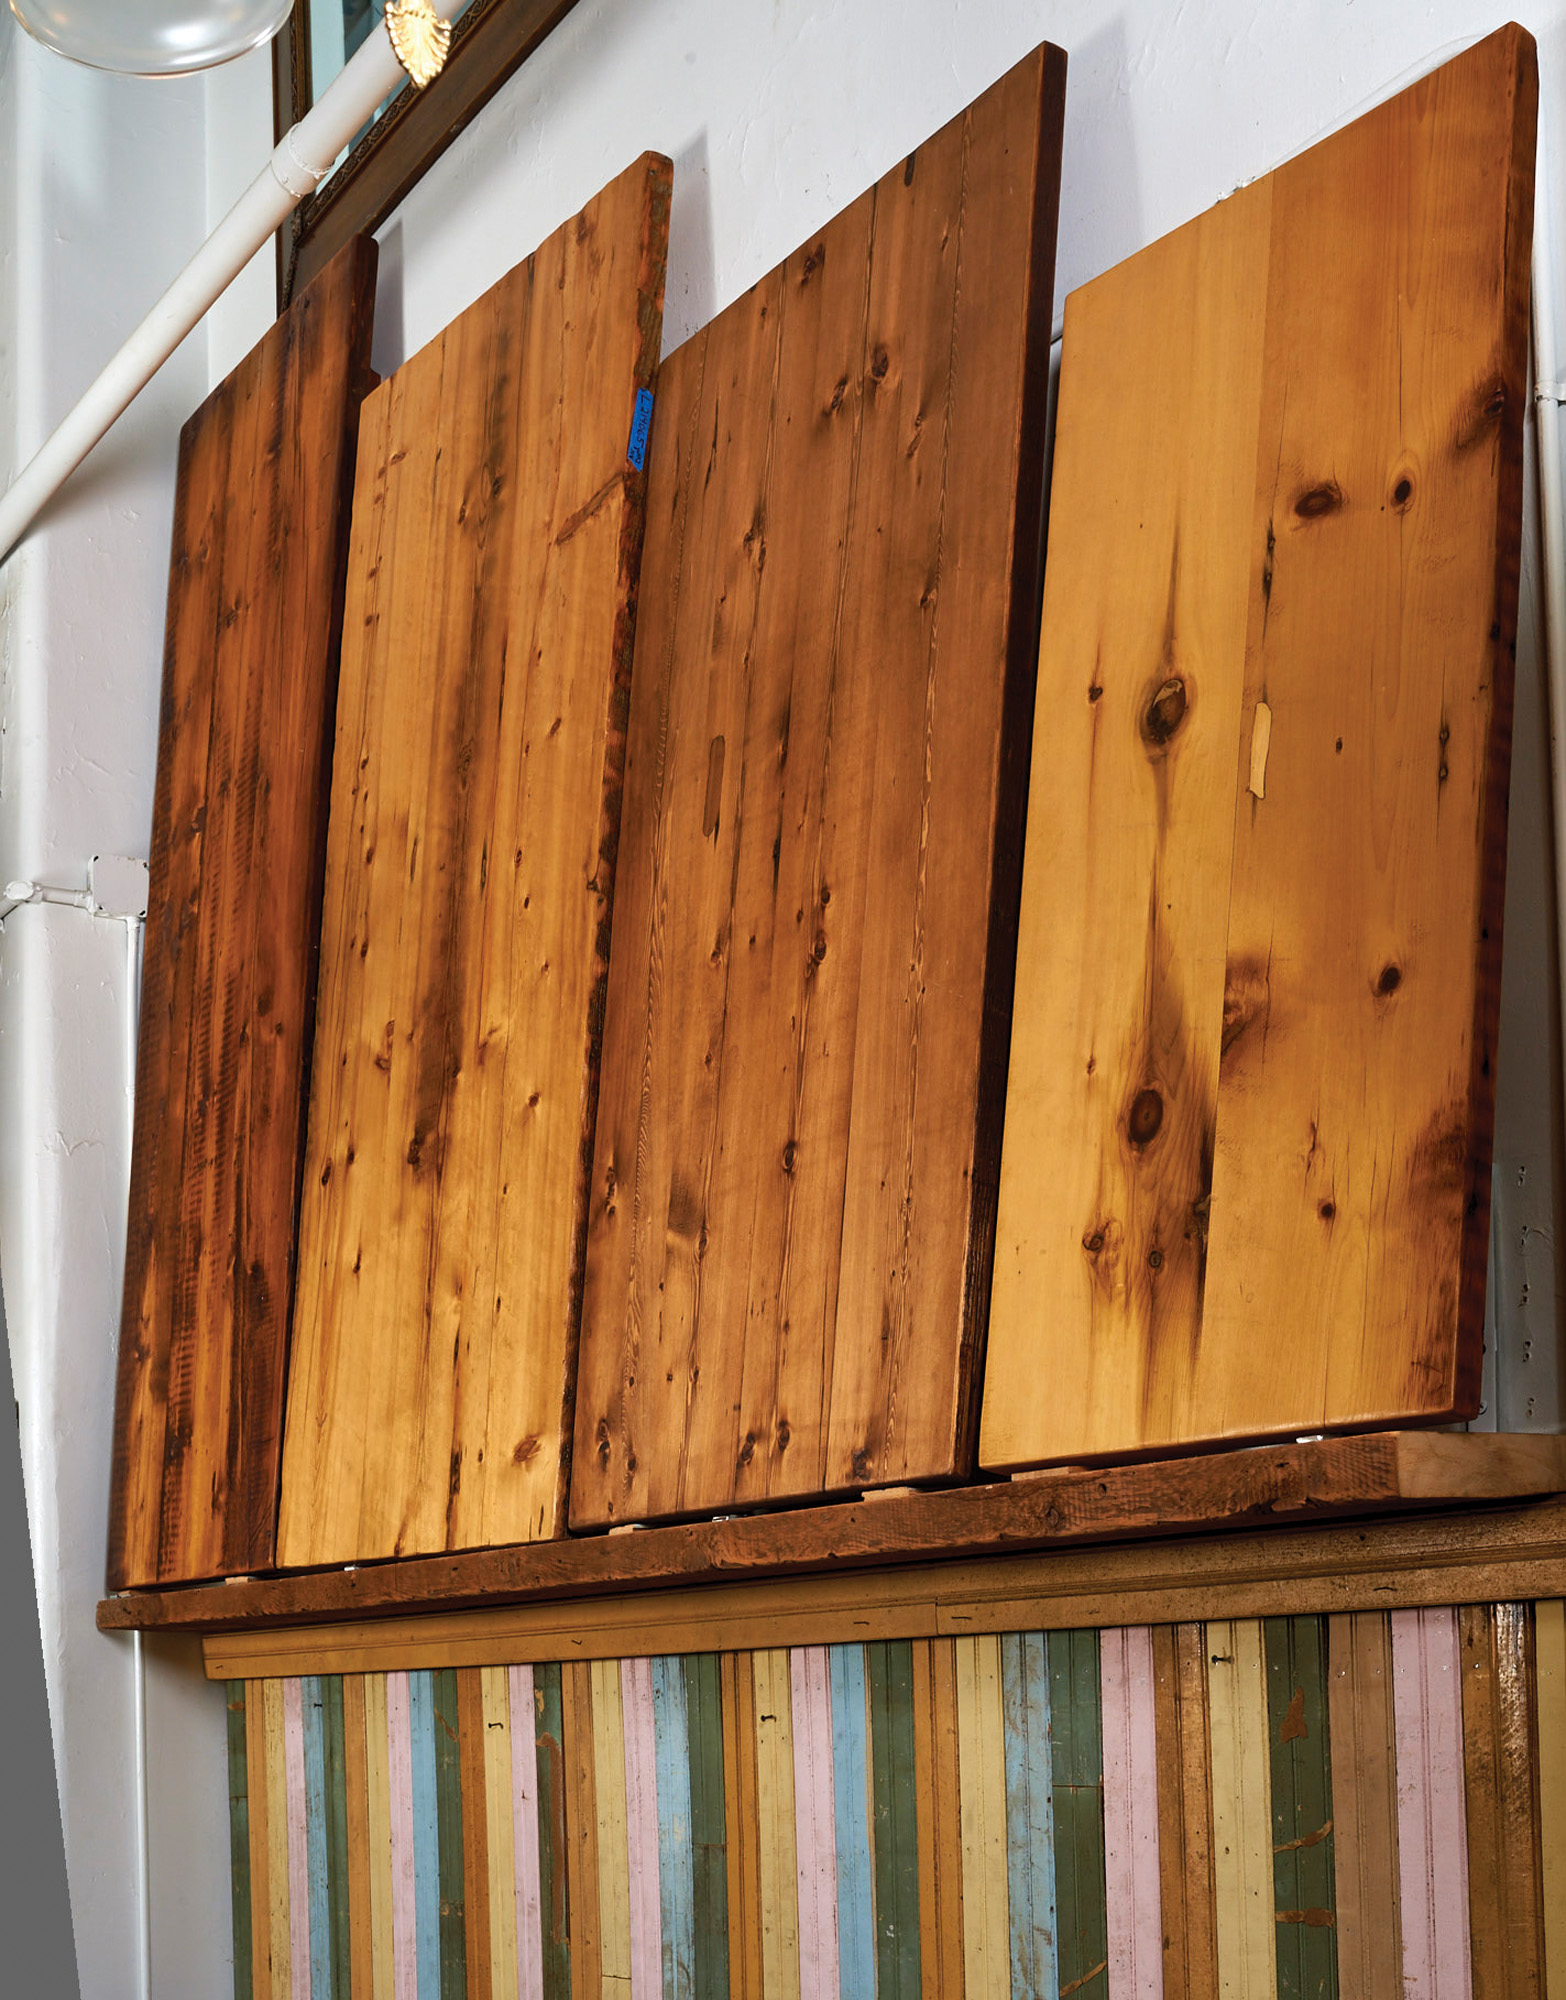 Wood tabletops from scrap lumber: awaiting reuse, samples on display at Olde Good Things in New York City.